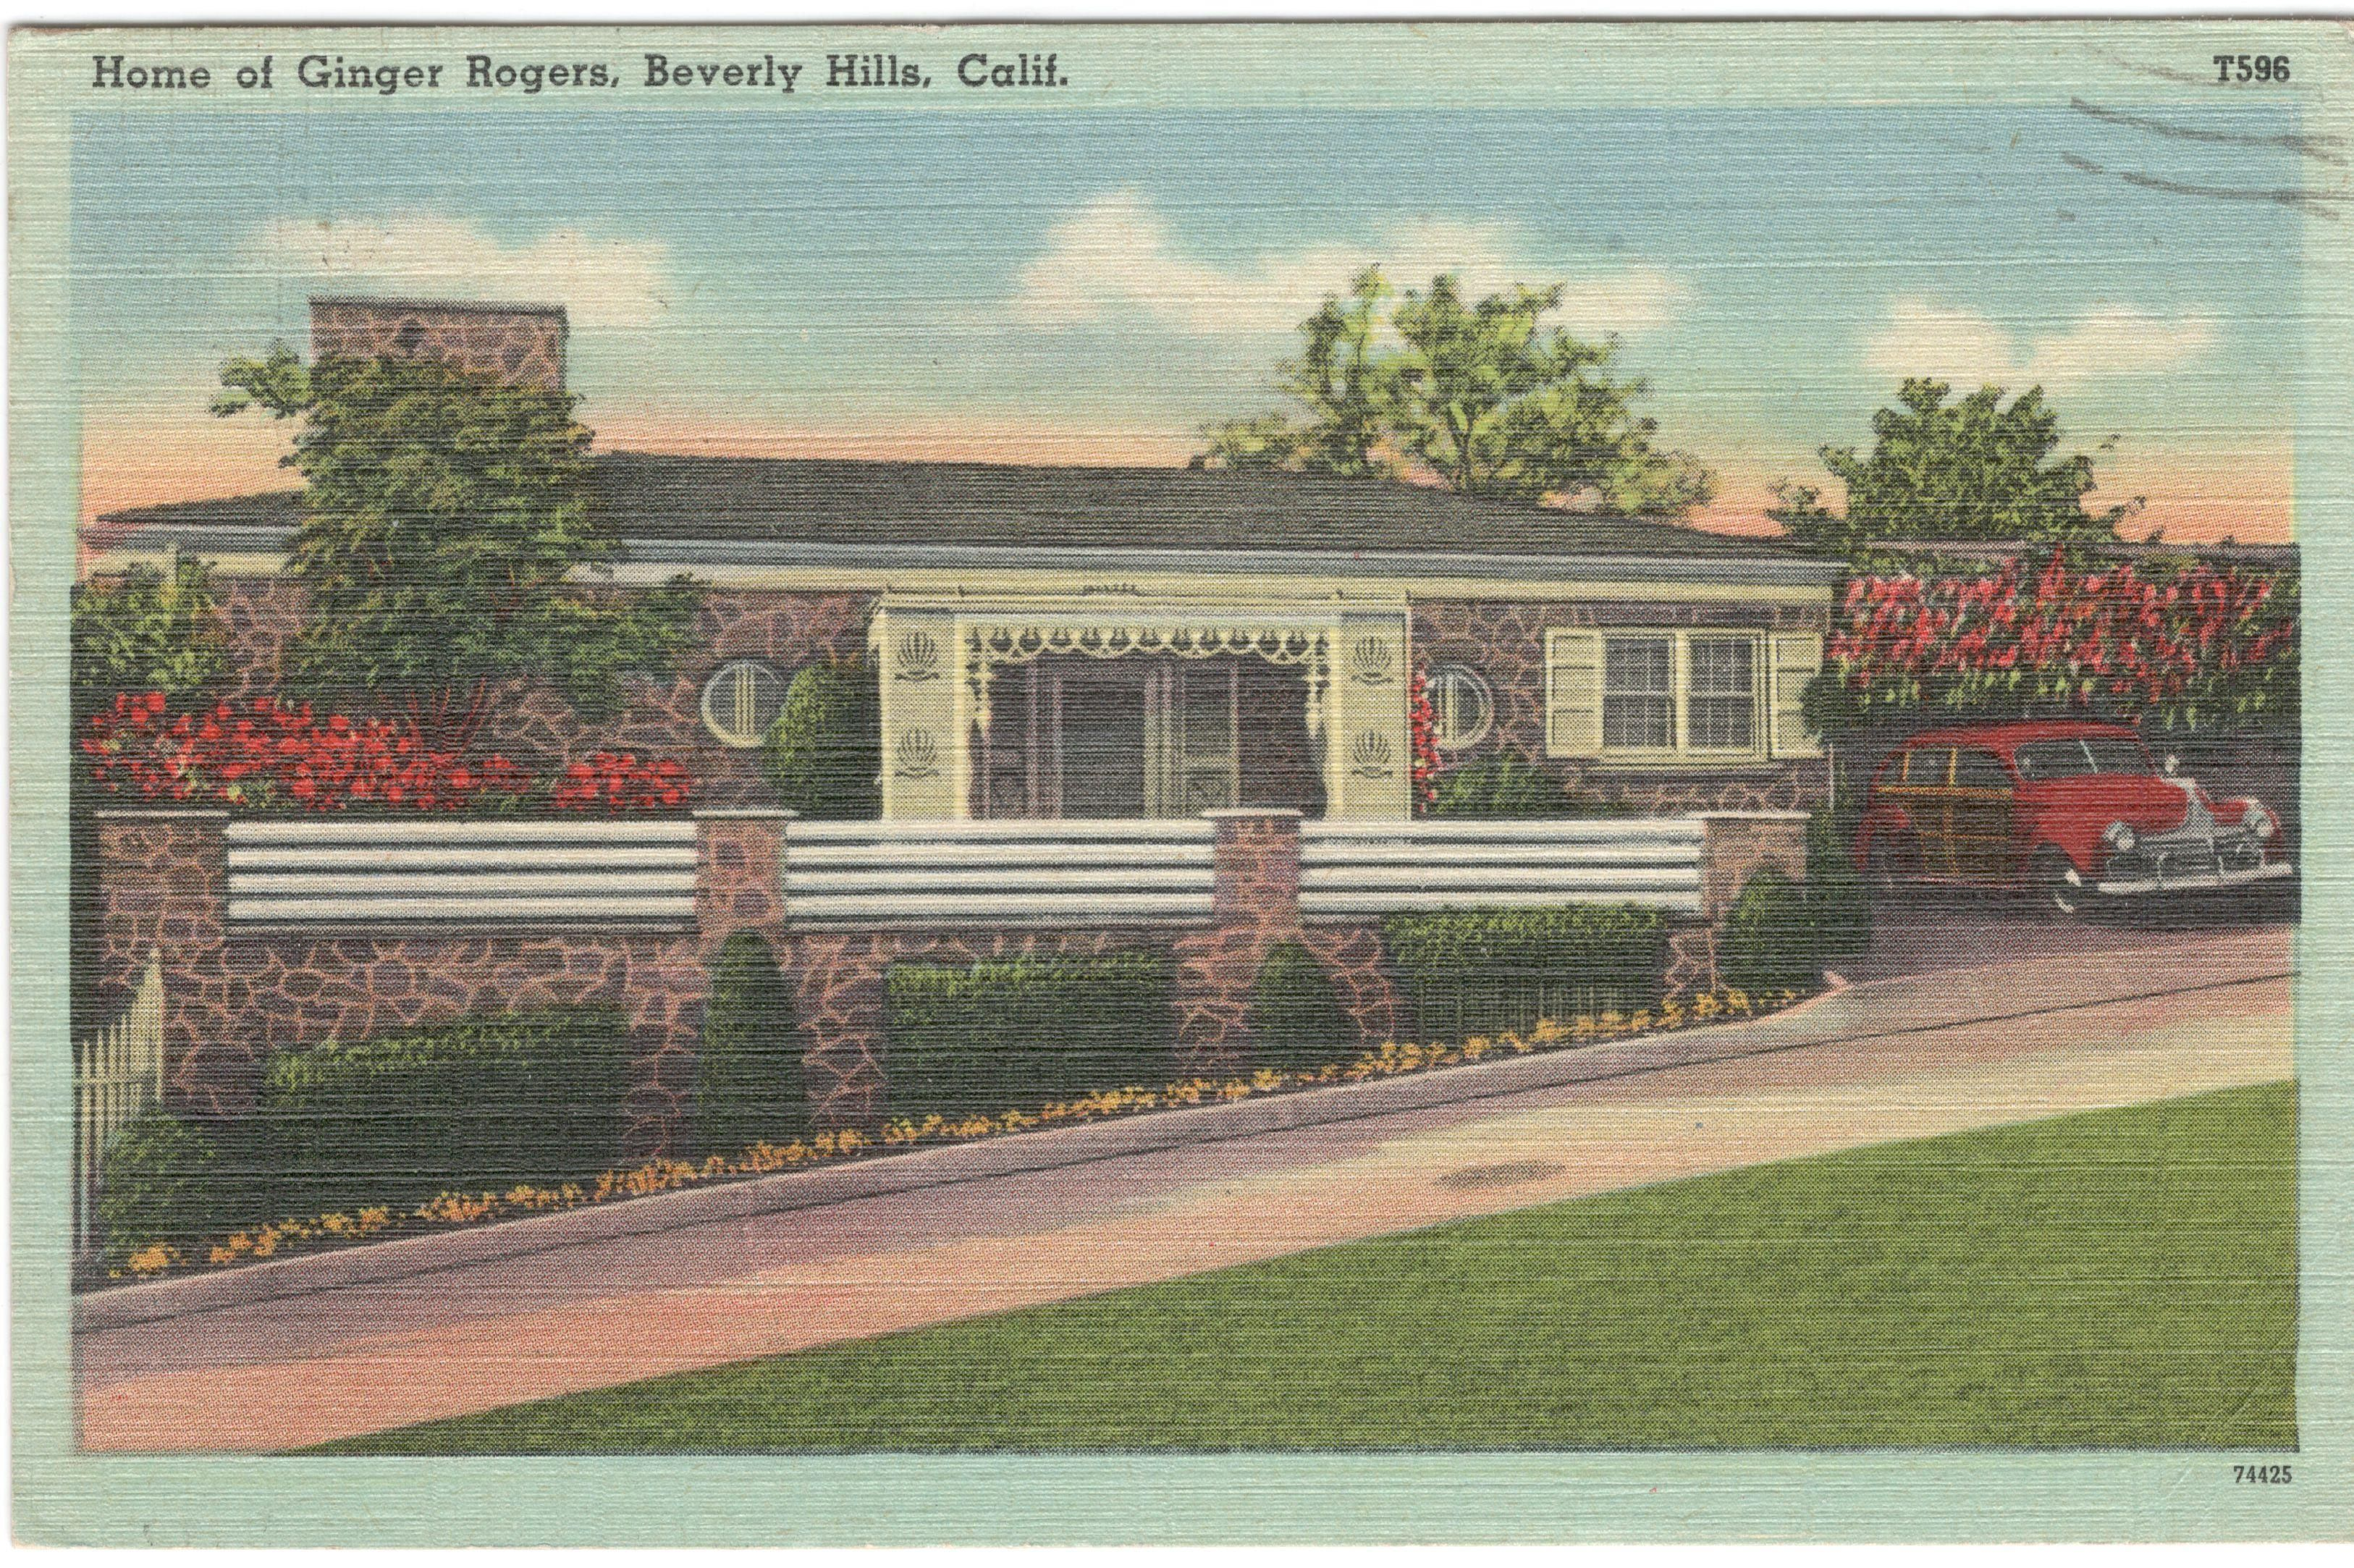 Ginger rogers home in 2020 hollywood homes celebrity